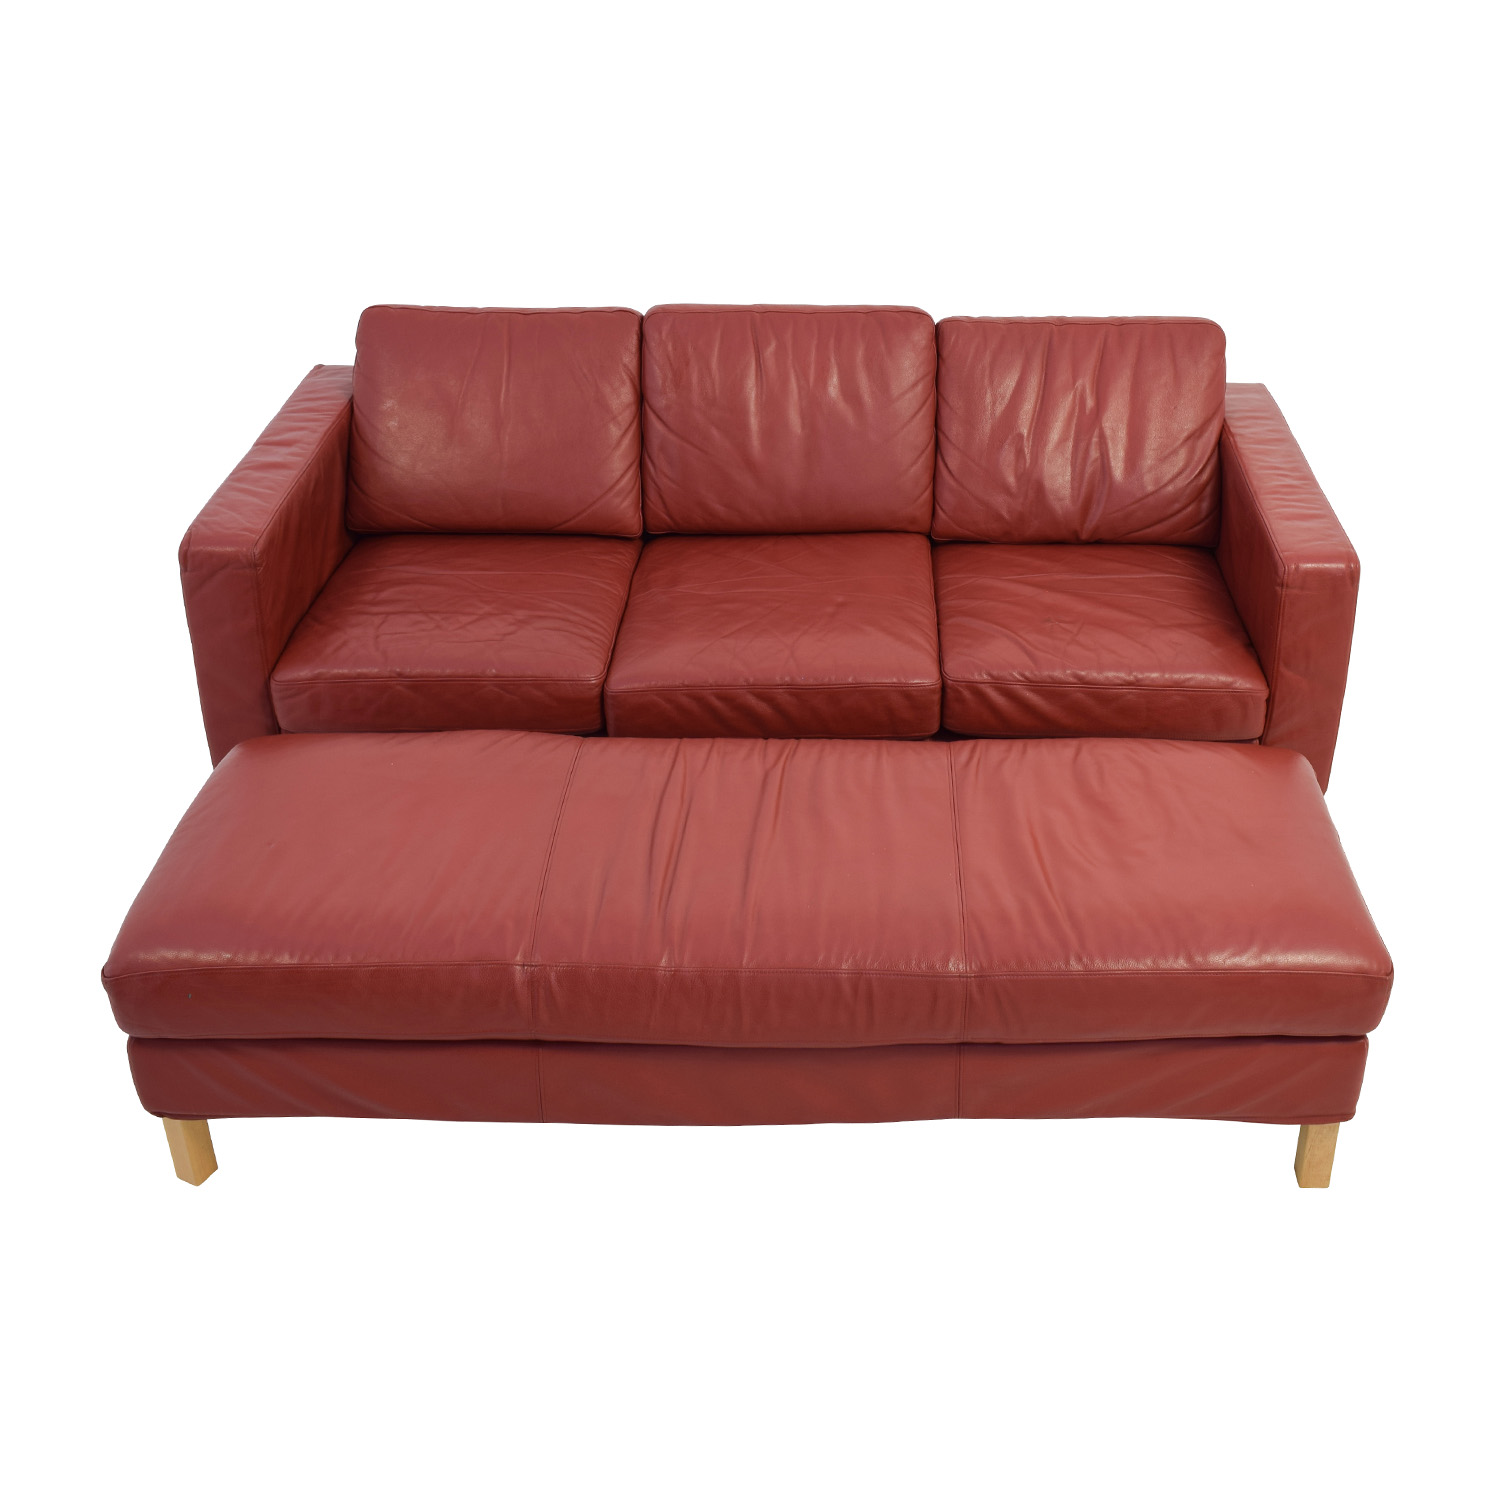 Contemporary Red Leather Couch and Ottoman Classic Sofas